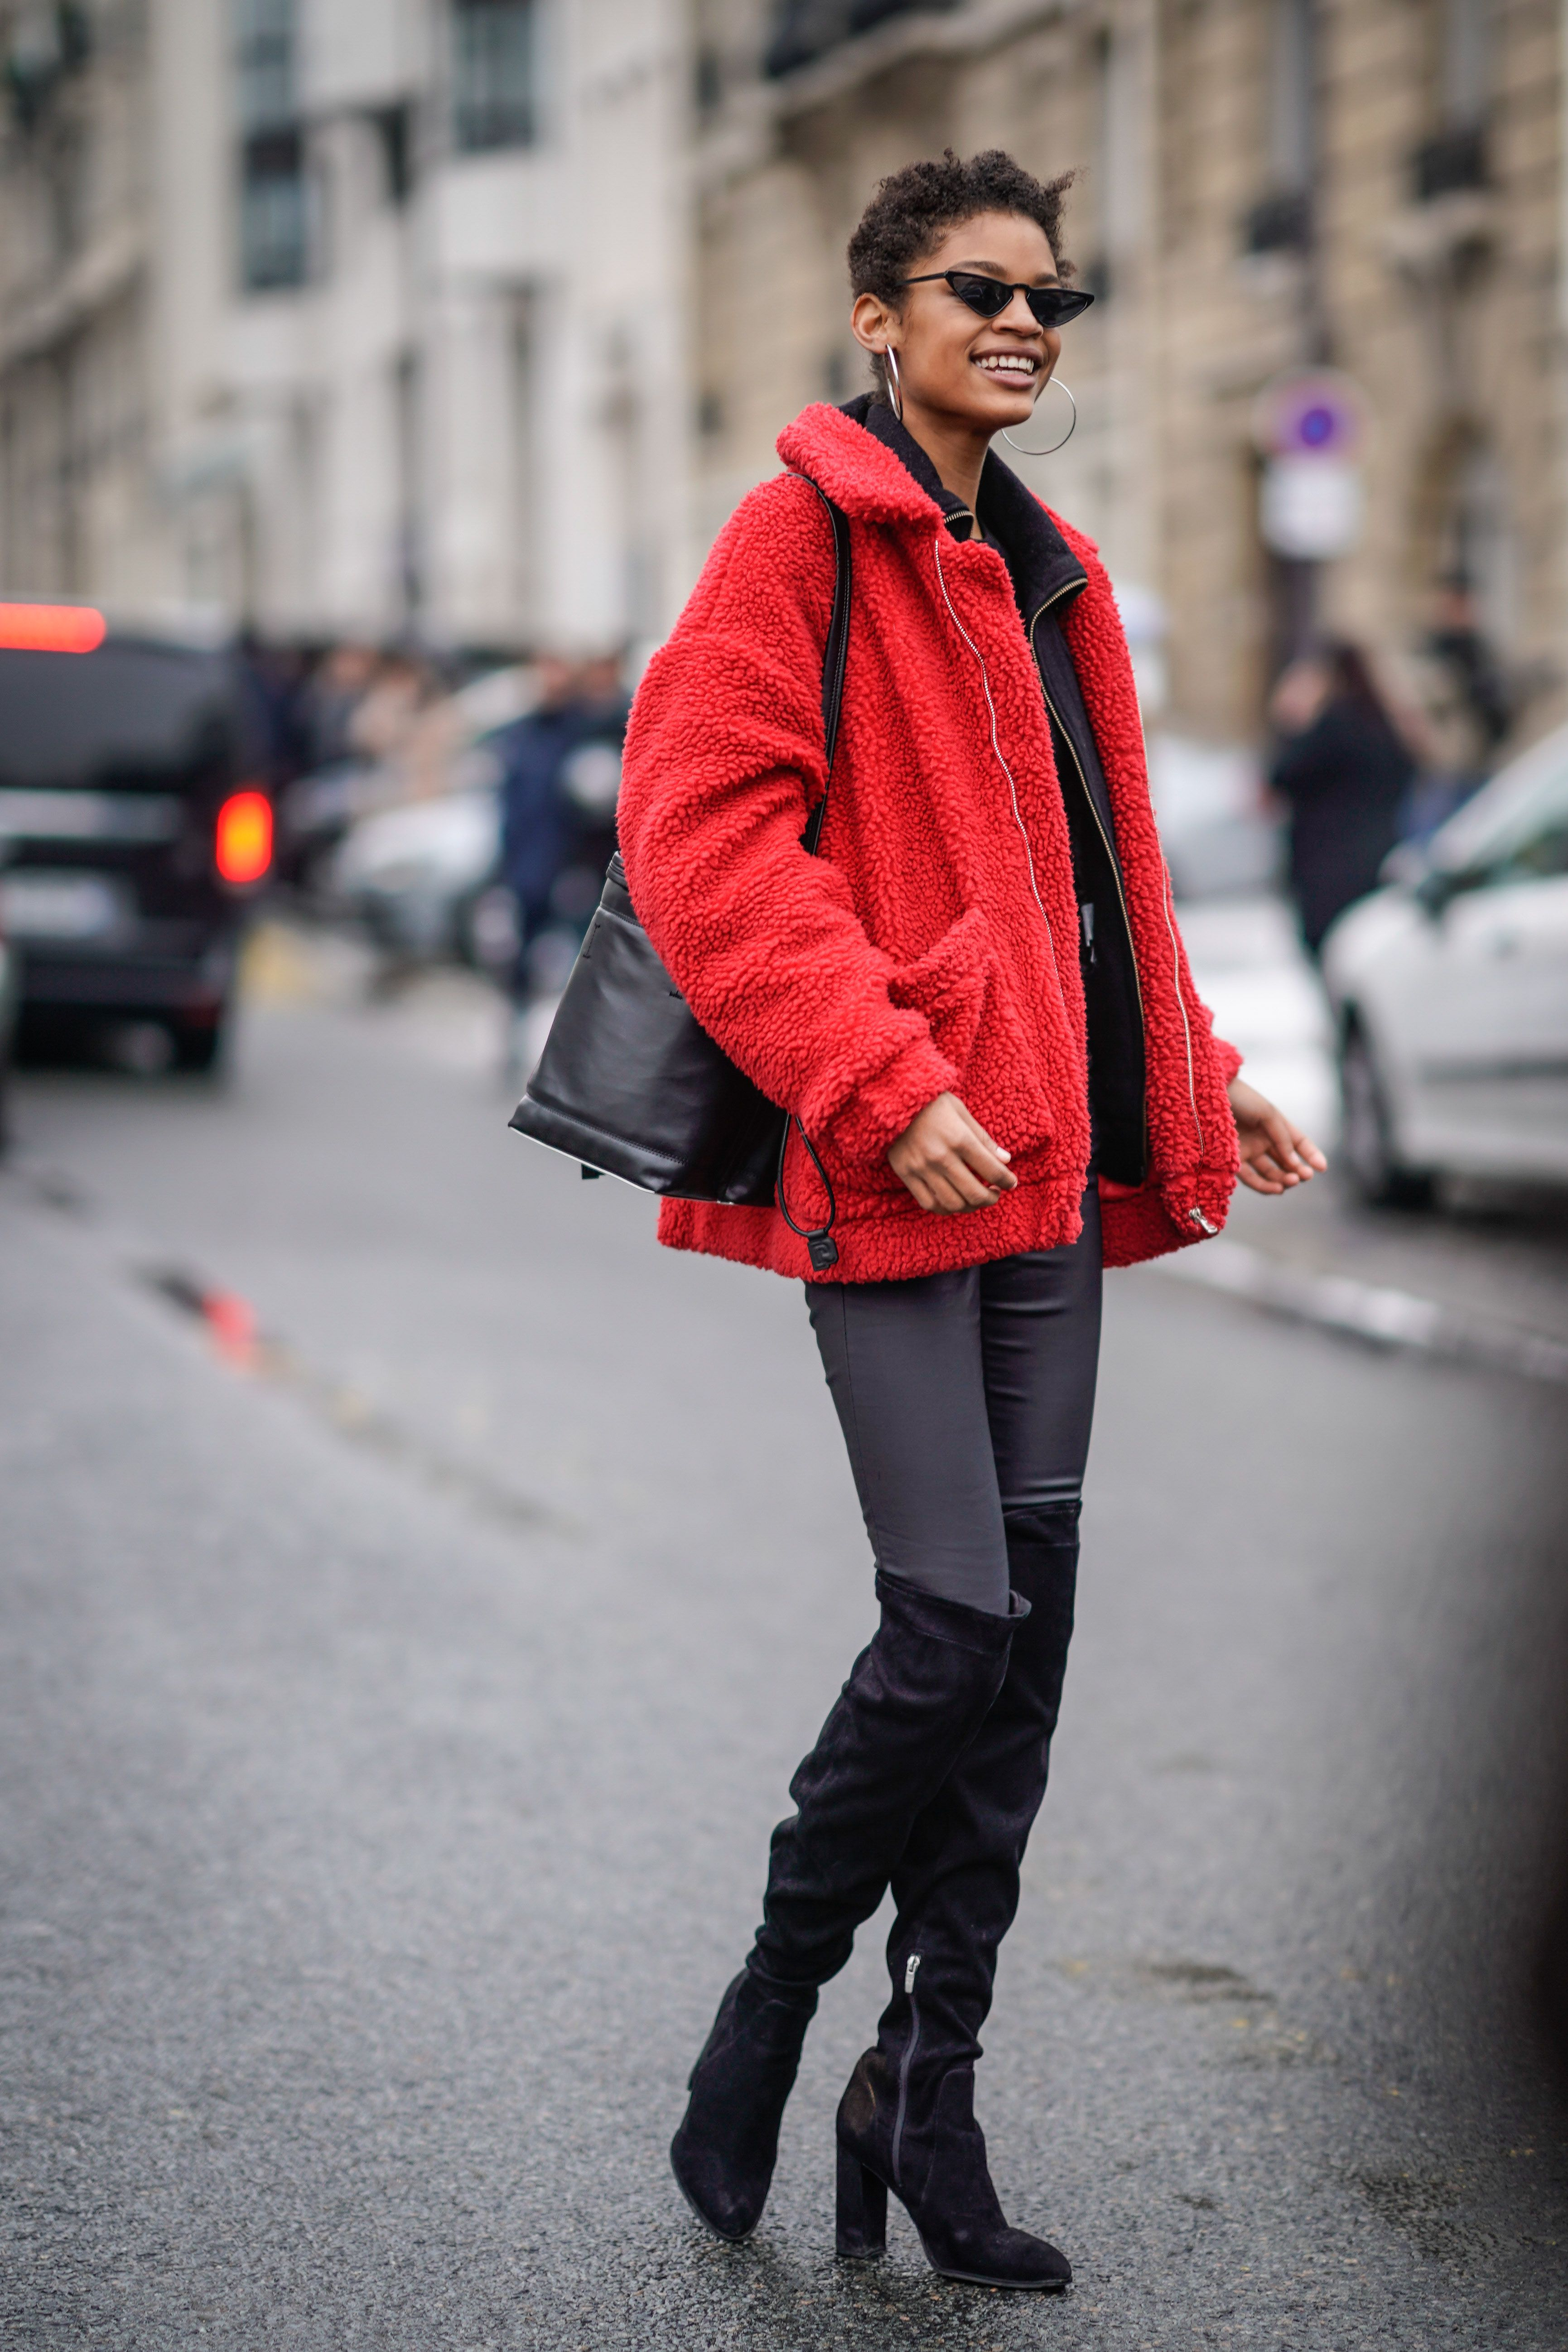 PARIS, FRANCE - MARCH 01:  A model wears a red coat, black thigh high boots, during Paris Fashion Week Womenswear Fall/Winter 2018/2019, on March 1, 2018 in Paris, France.  (Photo by Edward Berthelot/Getty Images)